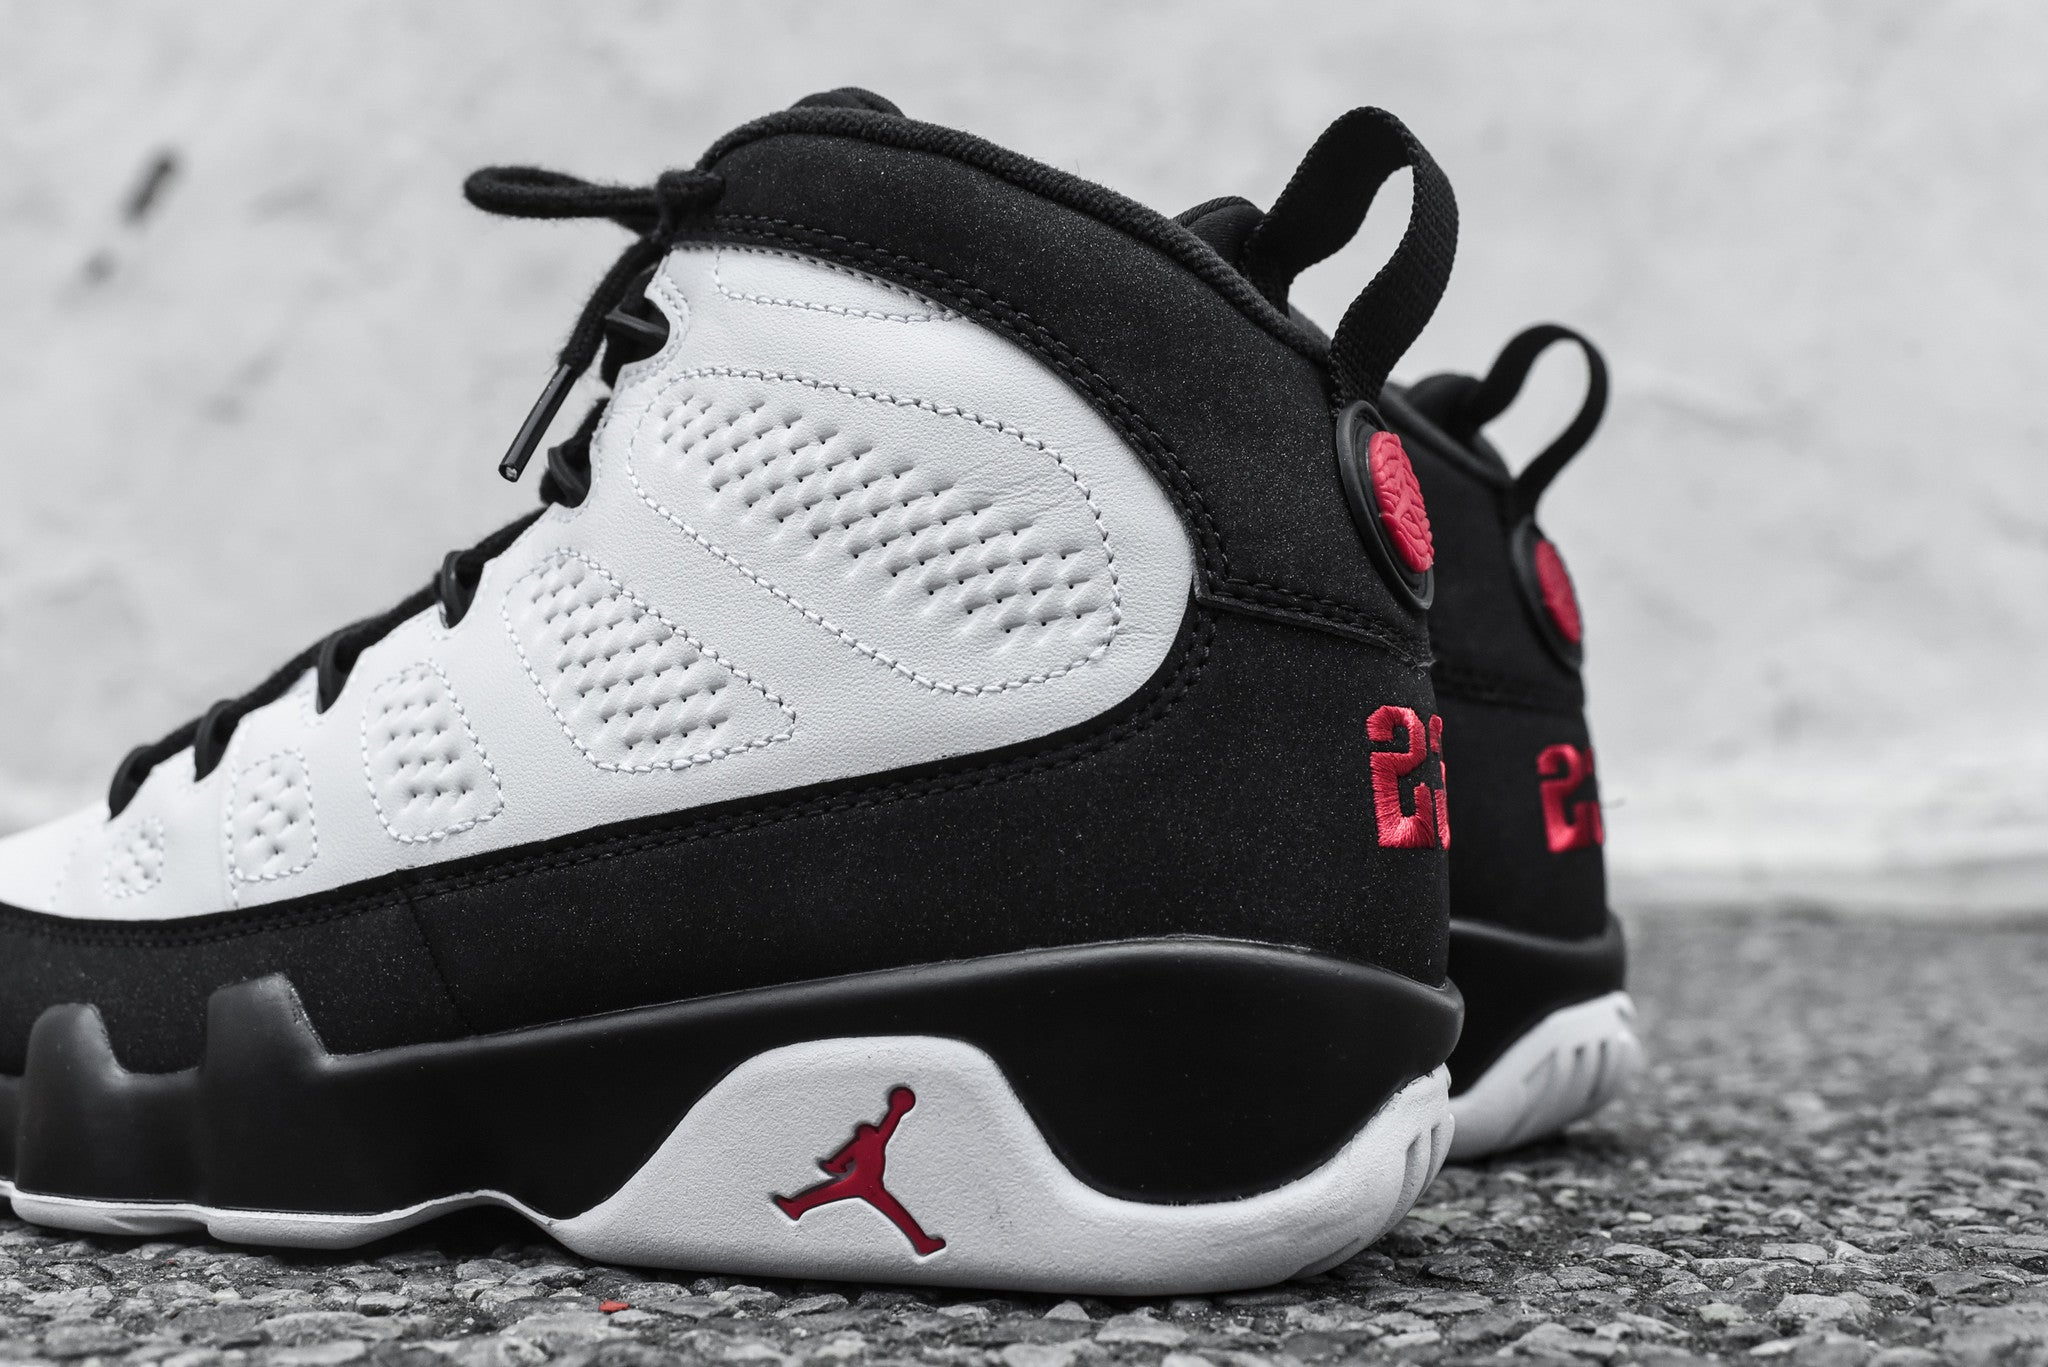 Nike Air Jordan 9 OG - Black / Red / White